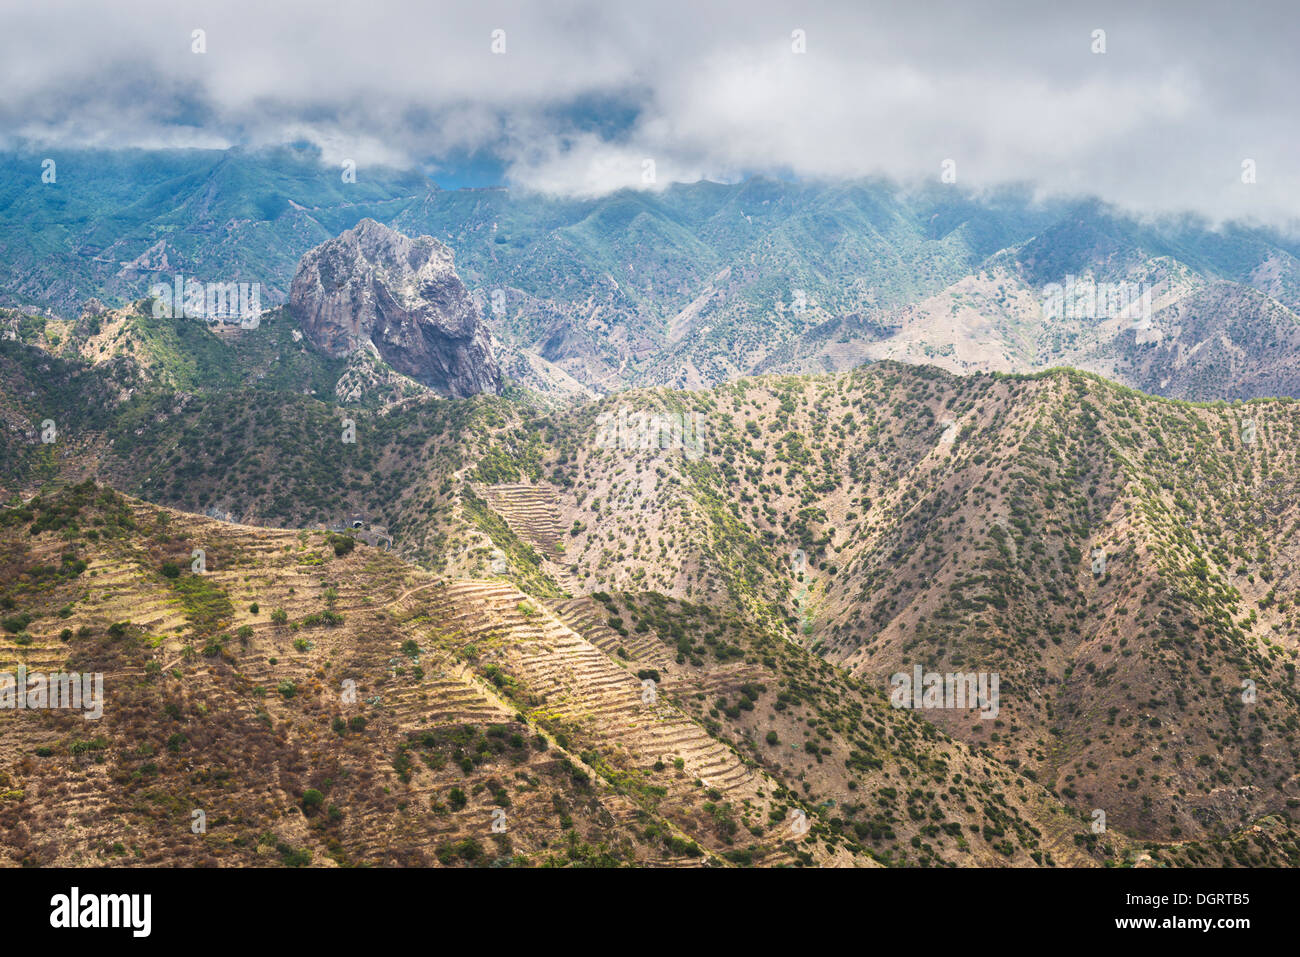 Misty mountain landscape of northern La Gomera, with juniper trees, agricultural terracing and the iconic phonolitic Roque Cano - Stock Image